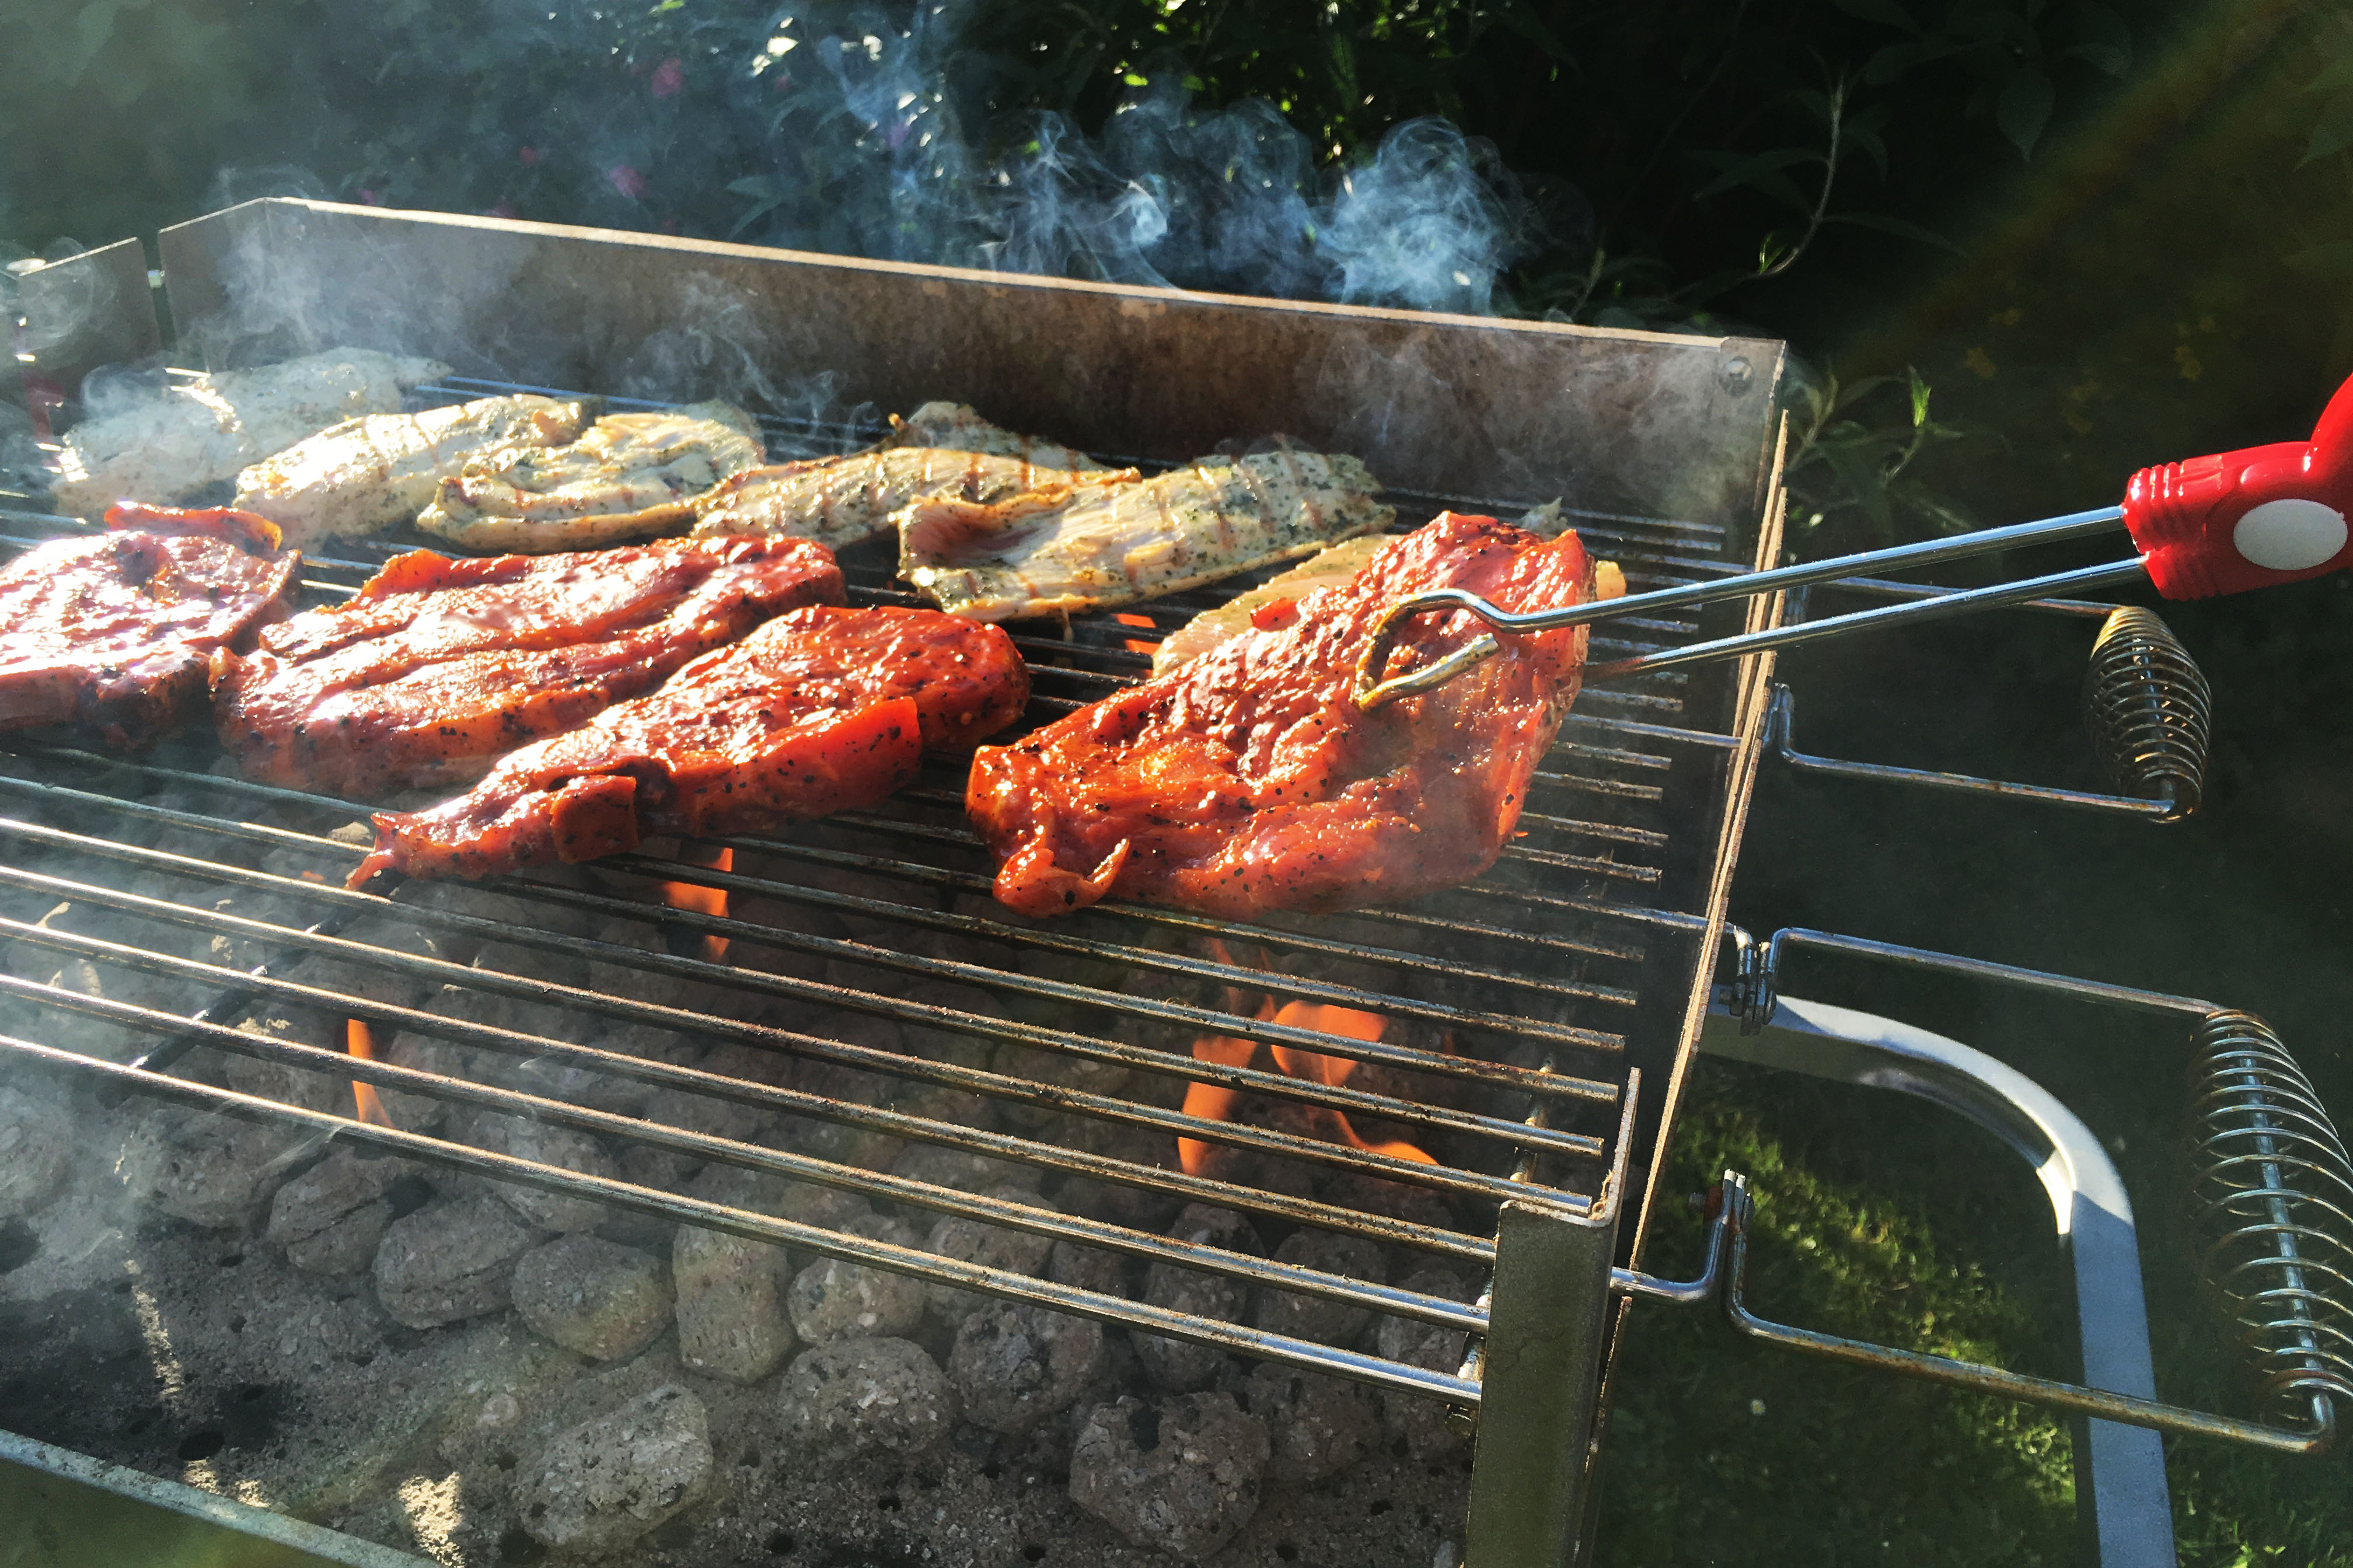 Barbecue on a grill